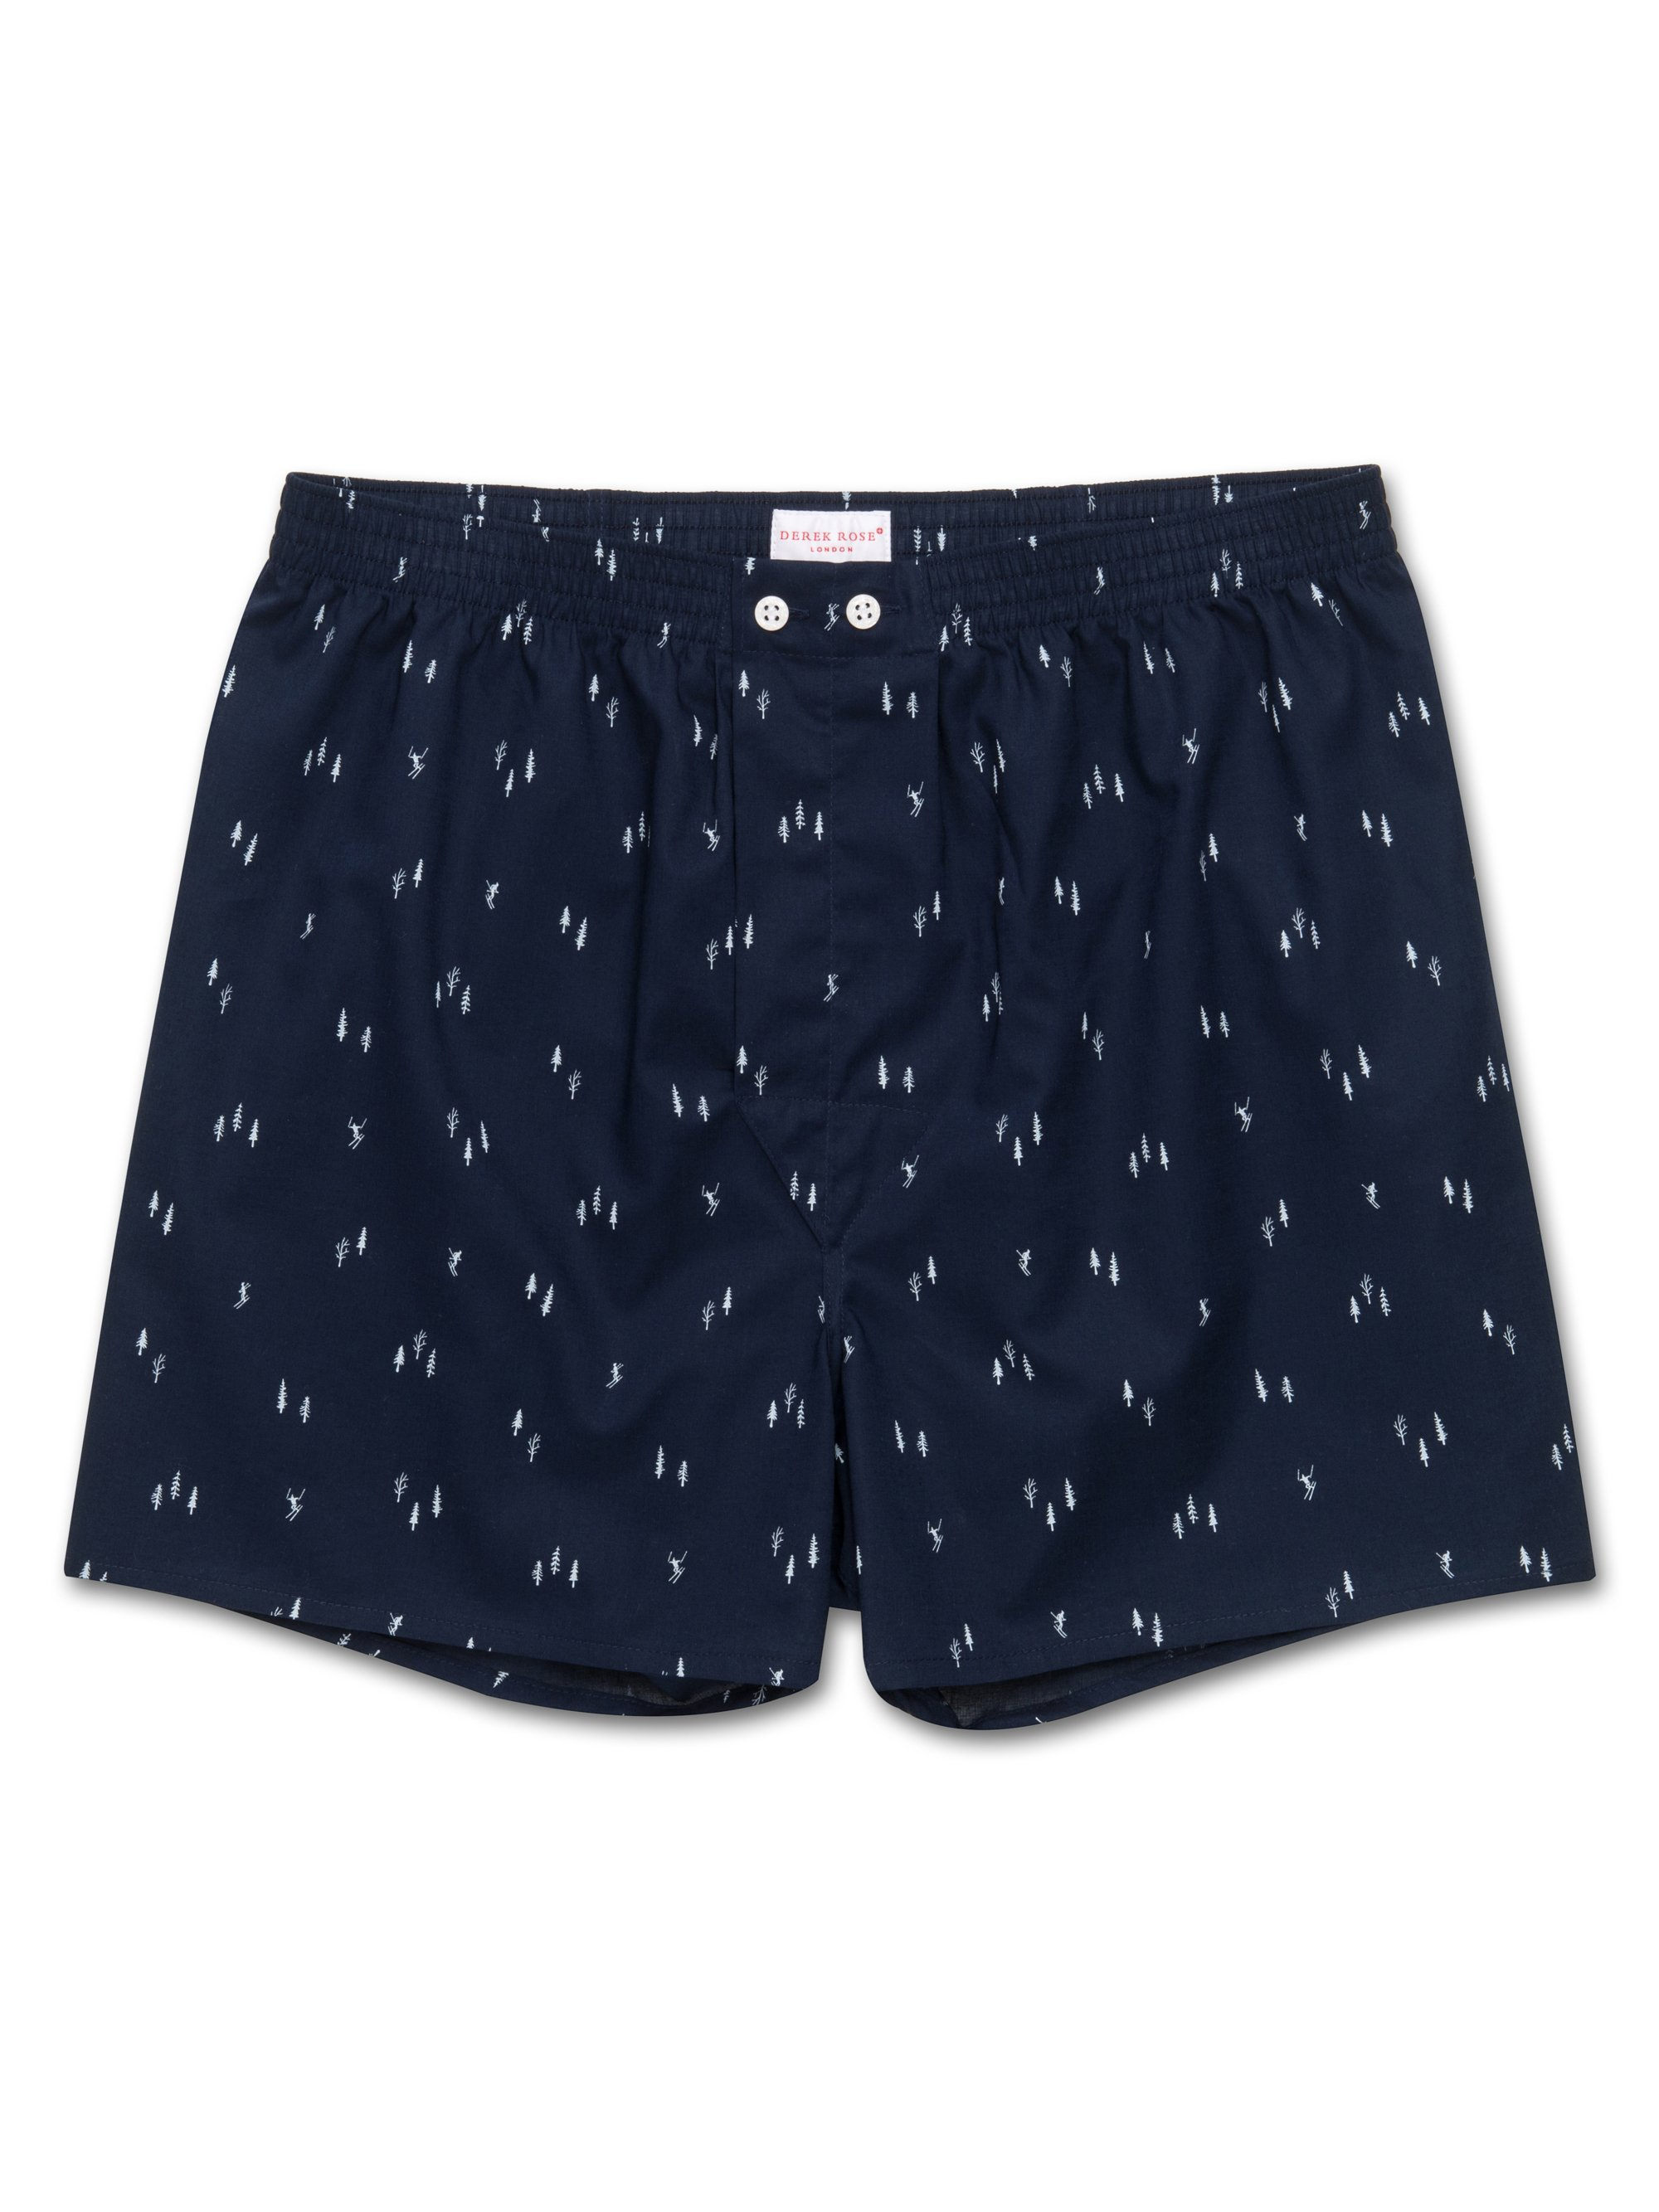 Men's Classic Fit Boxer Shorts Nelson 55 Cotton Batiste Navy